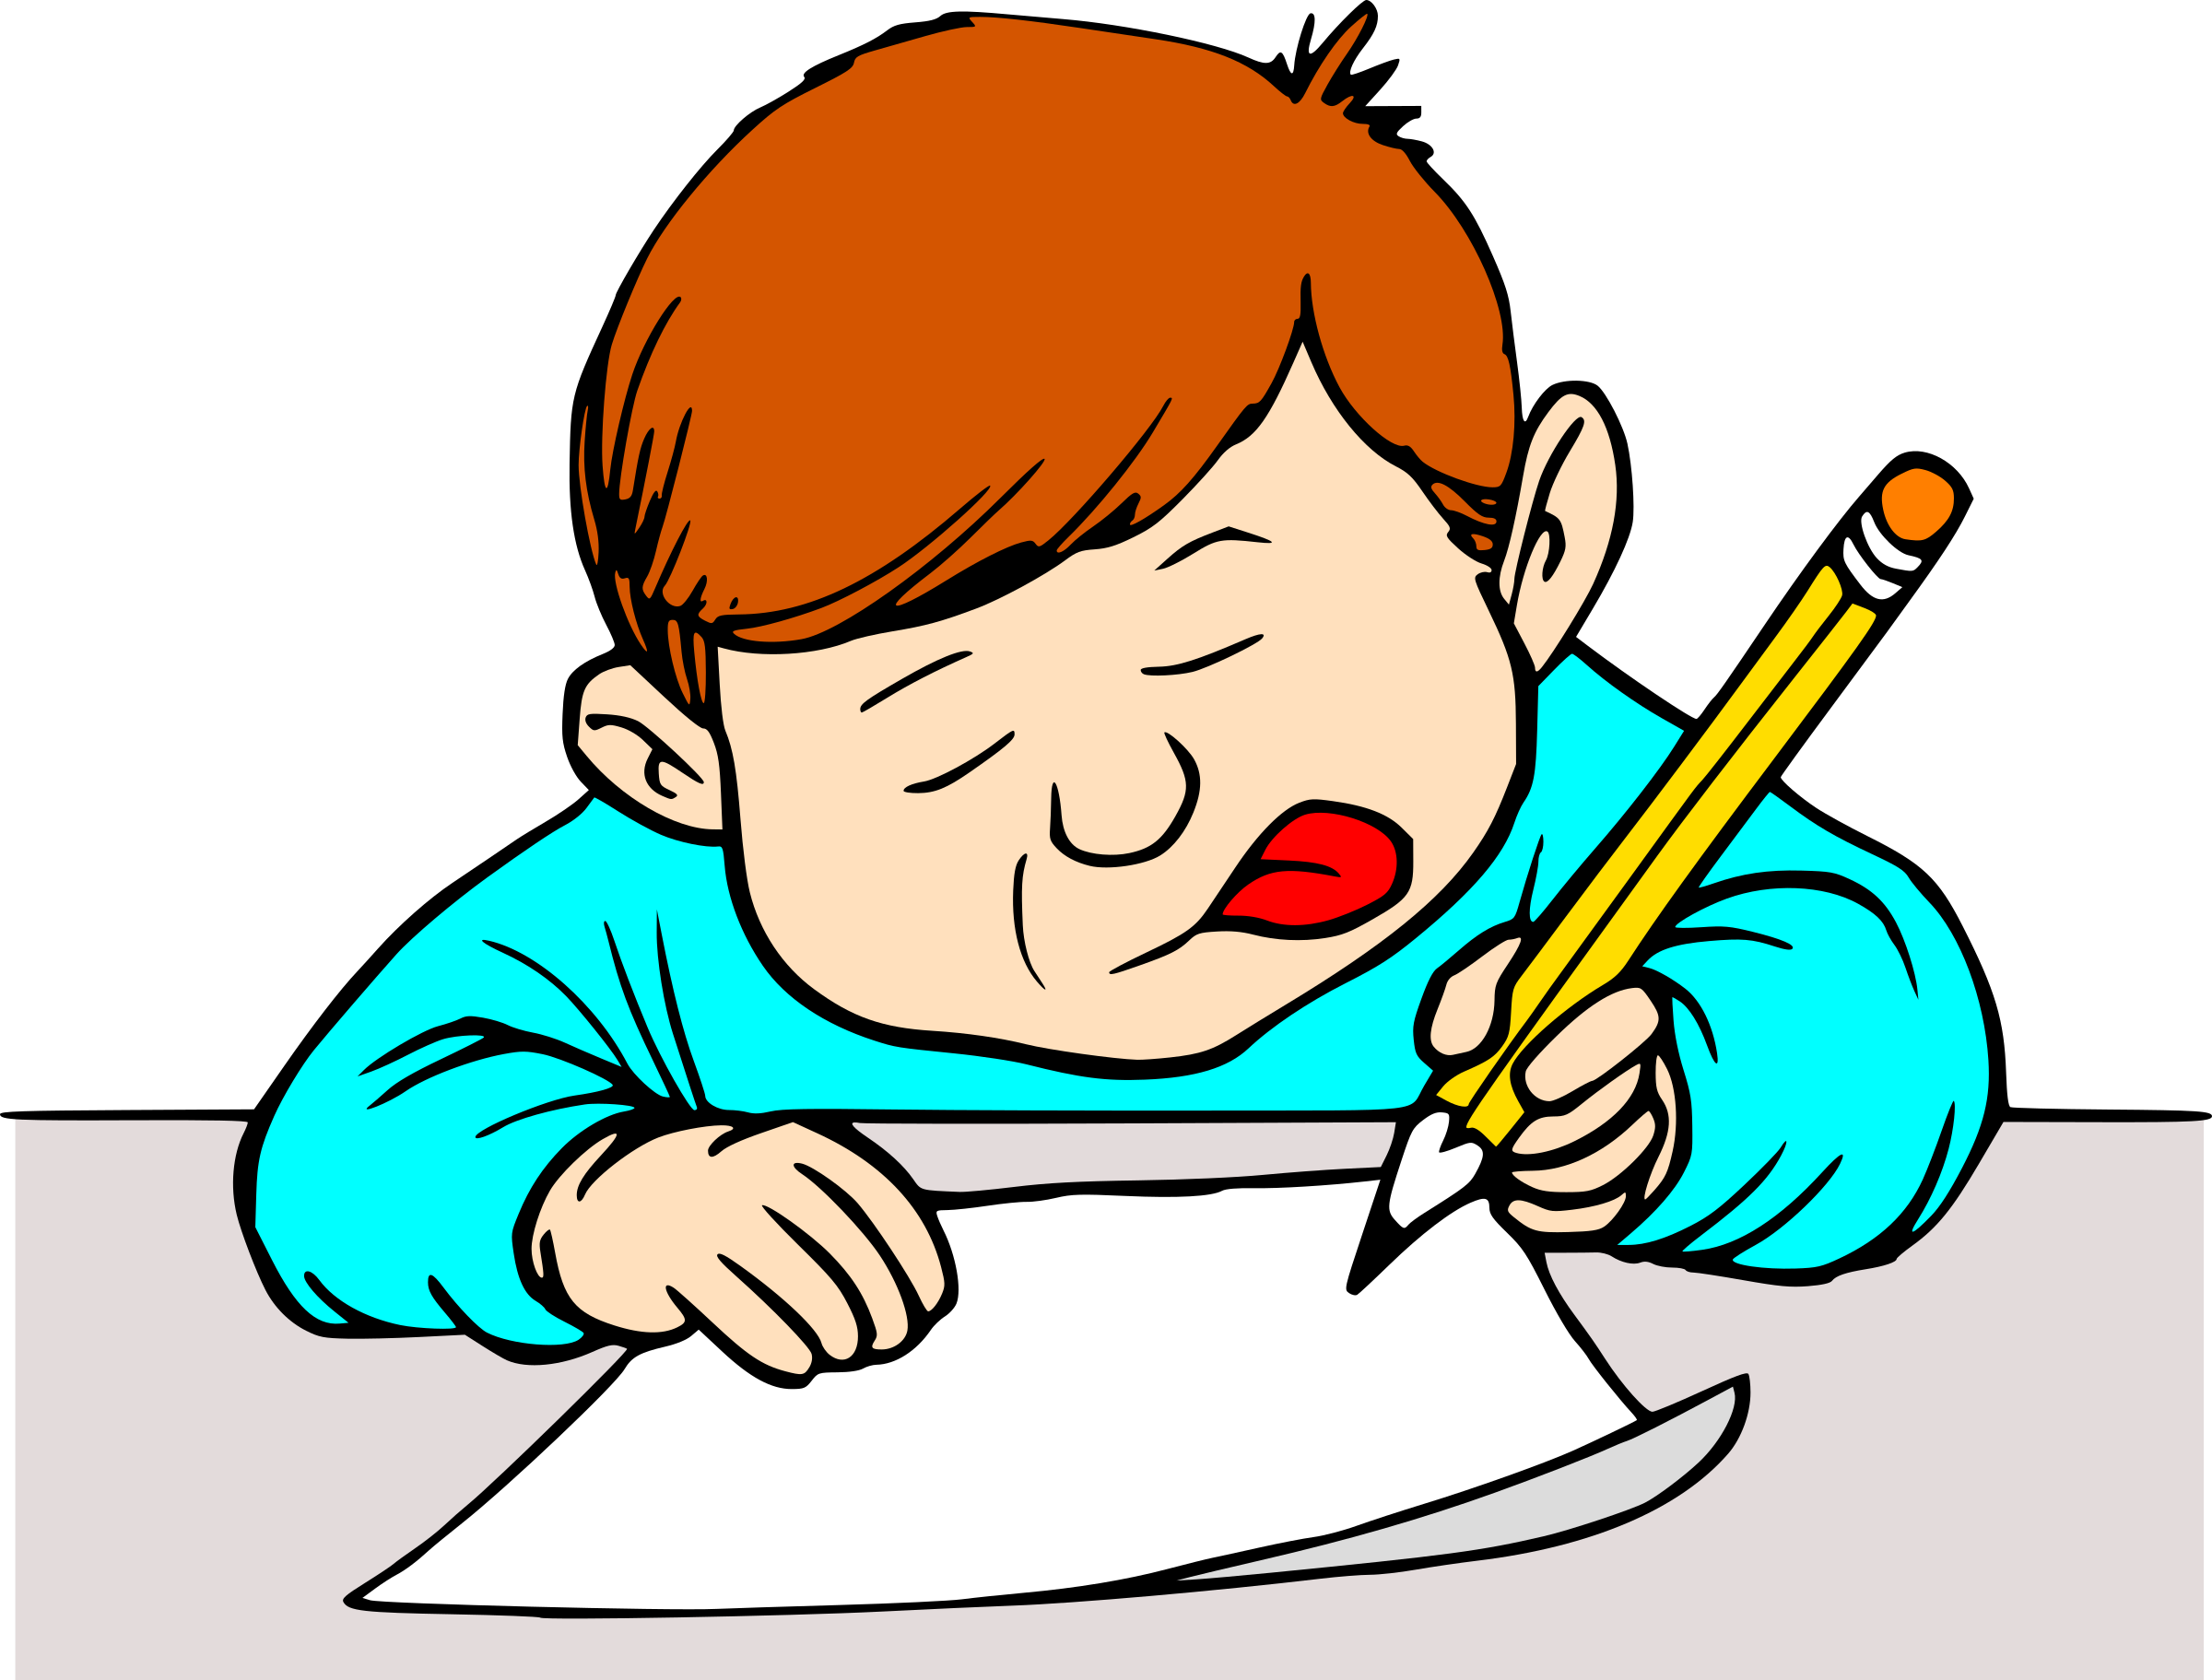 svg royalty free download Student big image png. Person writing clipart